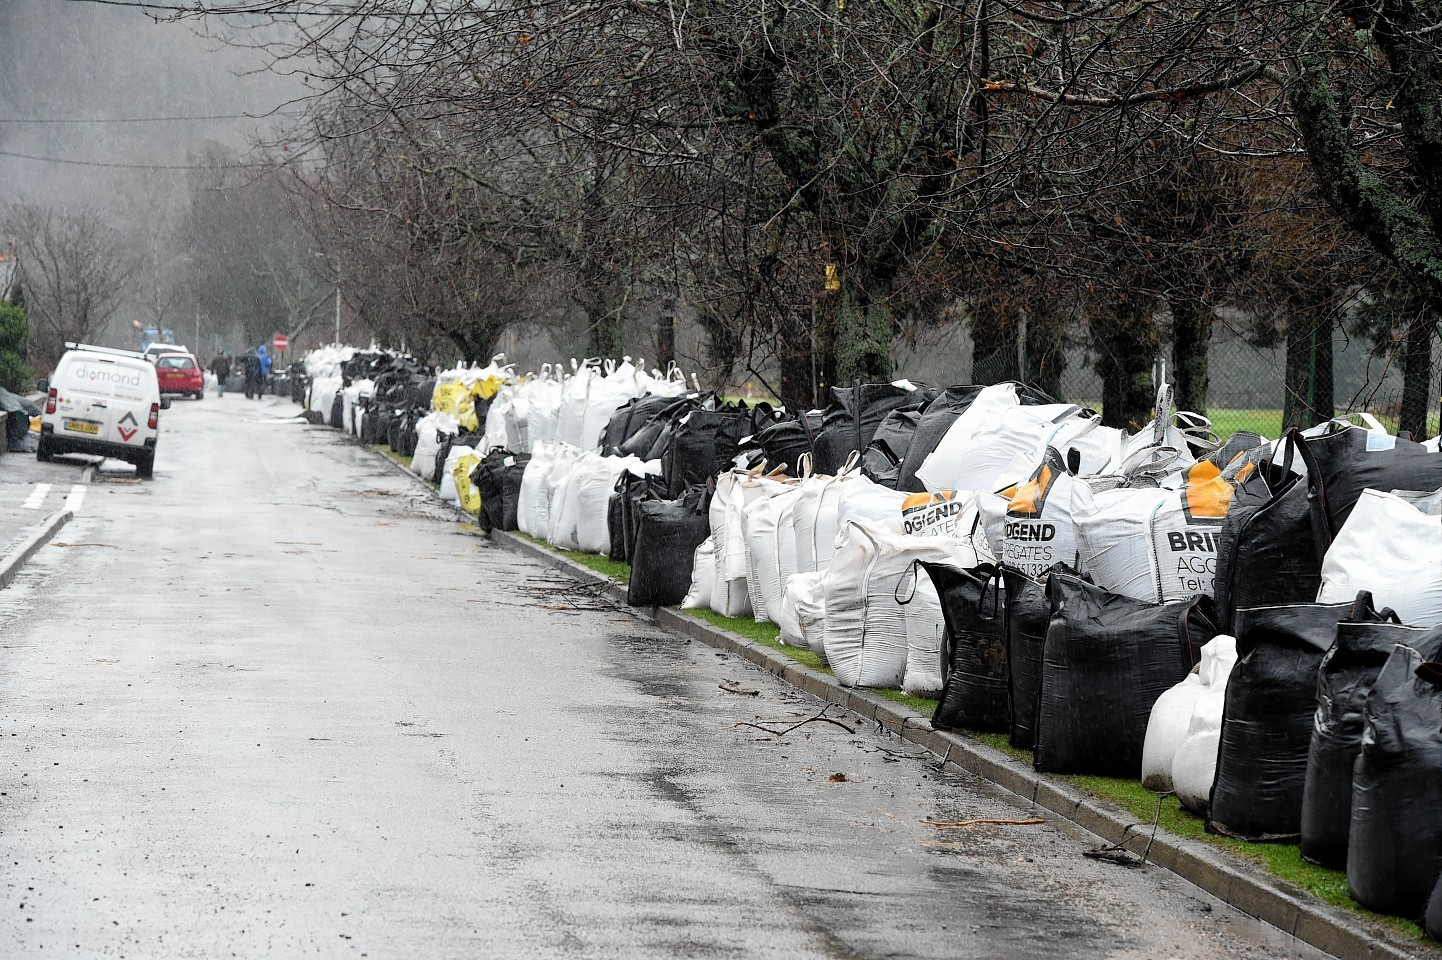 Heavy bags left near the golf course. Picture by Jim Irvine